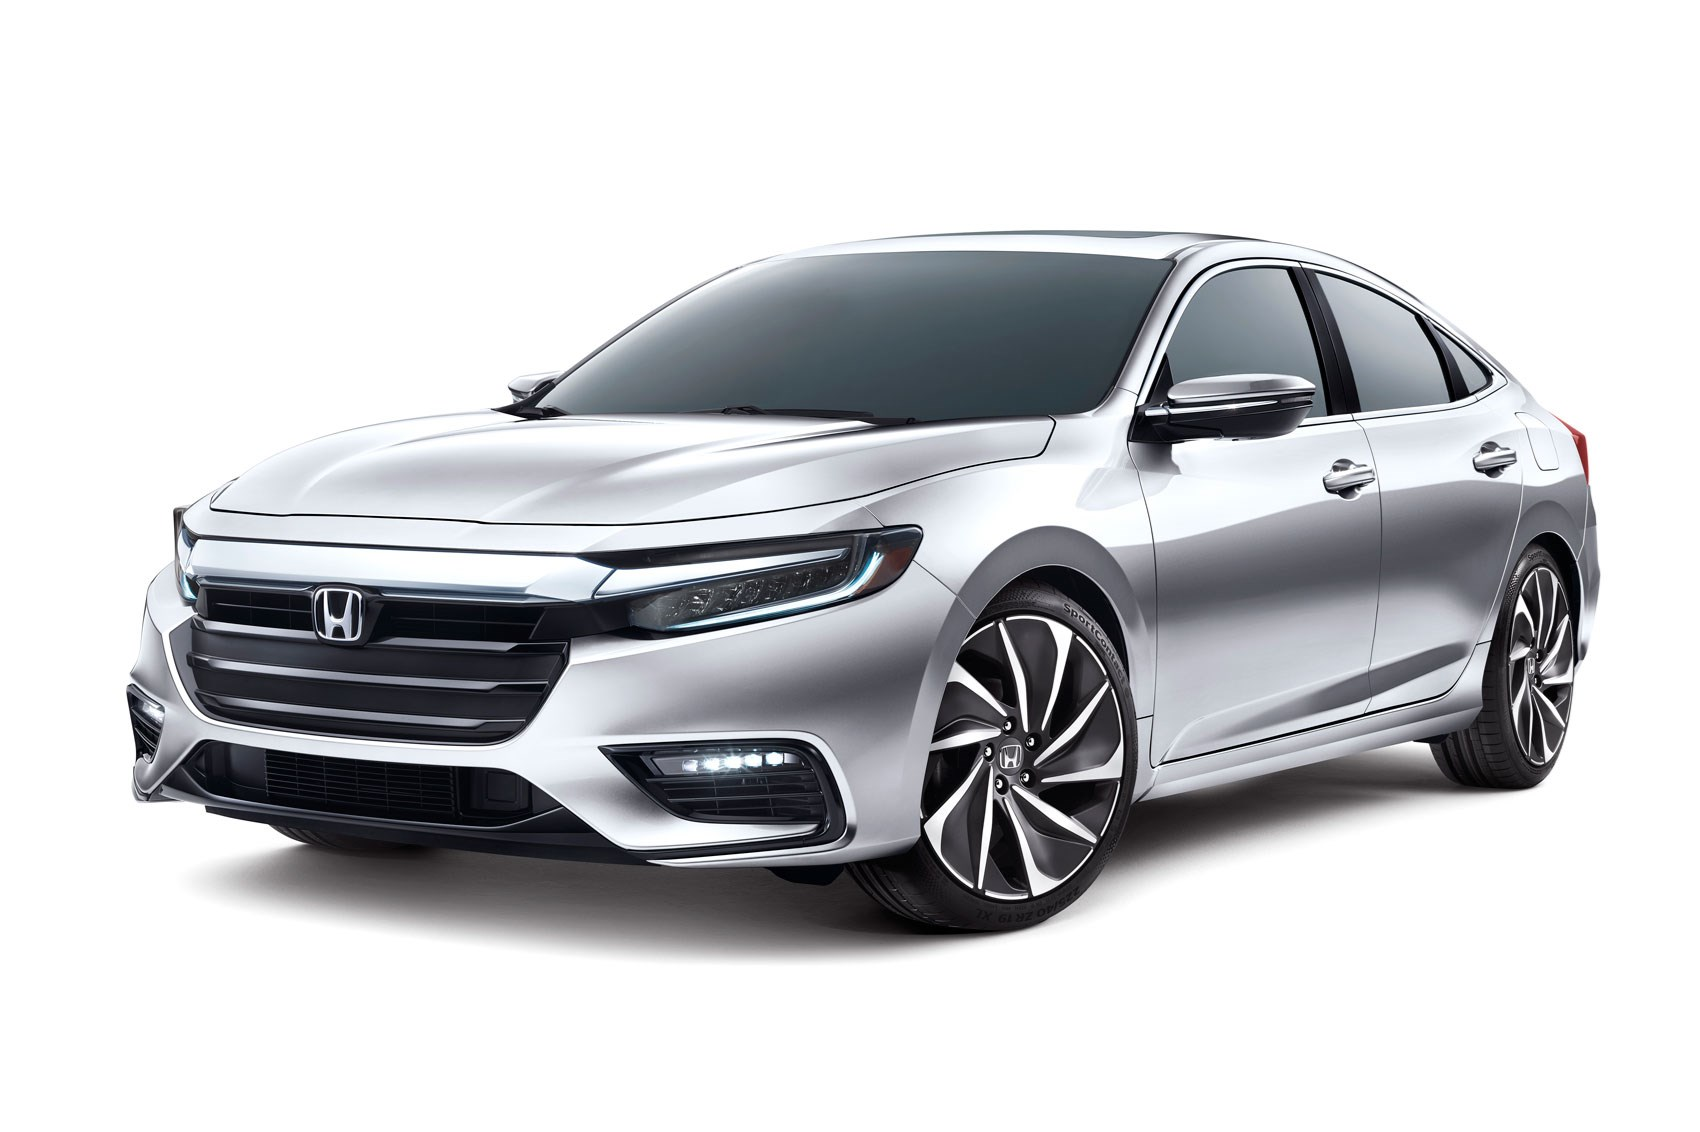 new honda insight sleek hybrid prototype 39 s specs detailed at naias 2018 car magazine. Black Bedroom Furniture Sets. Home Design Ideas